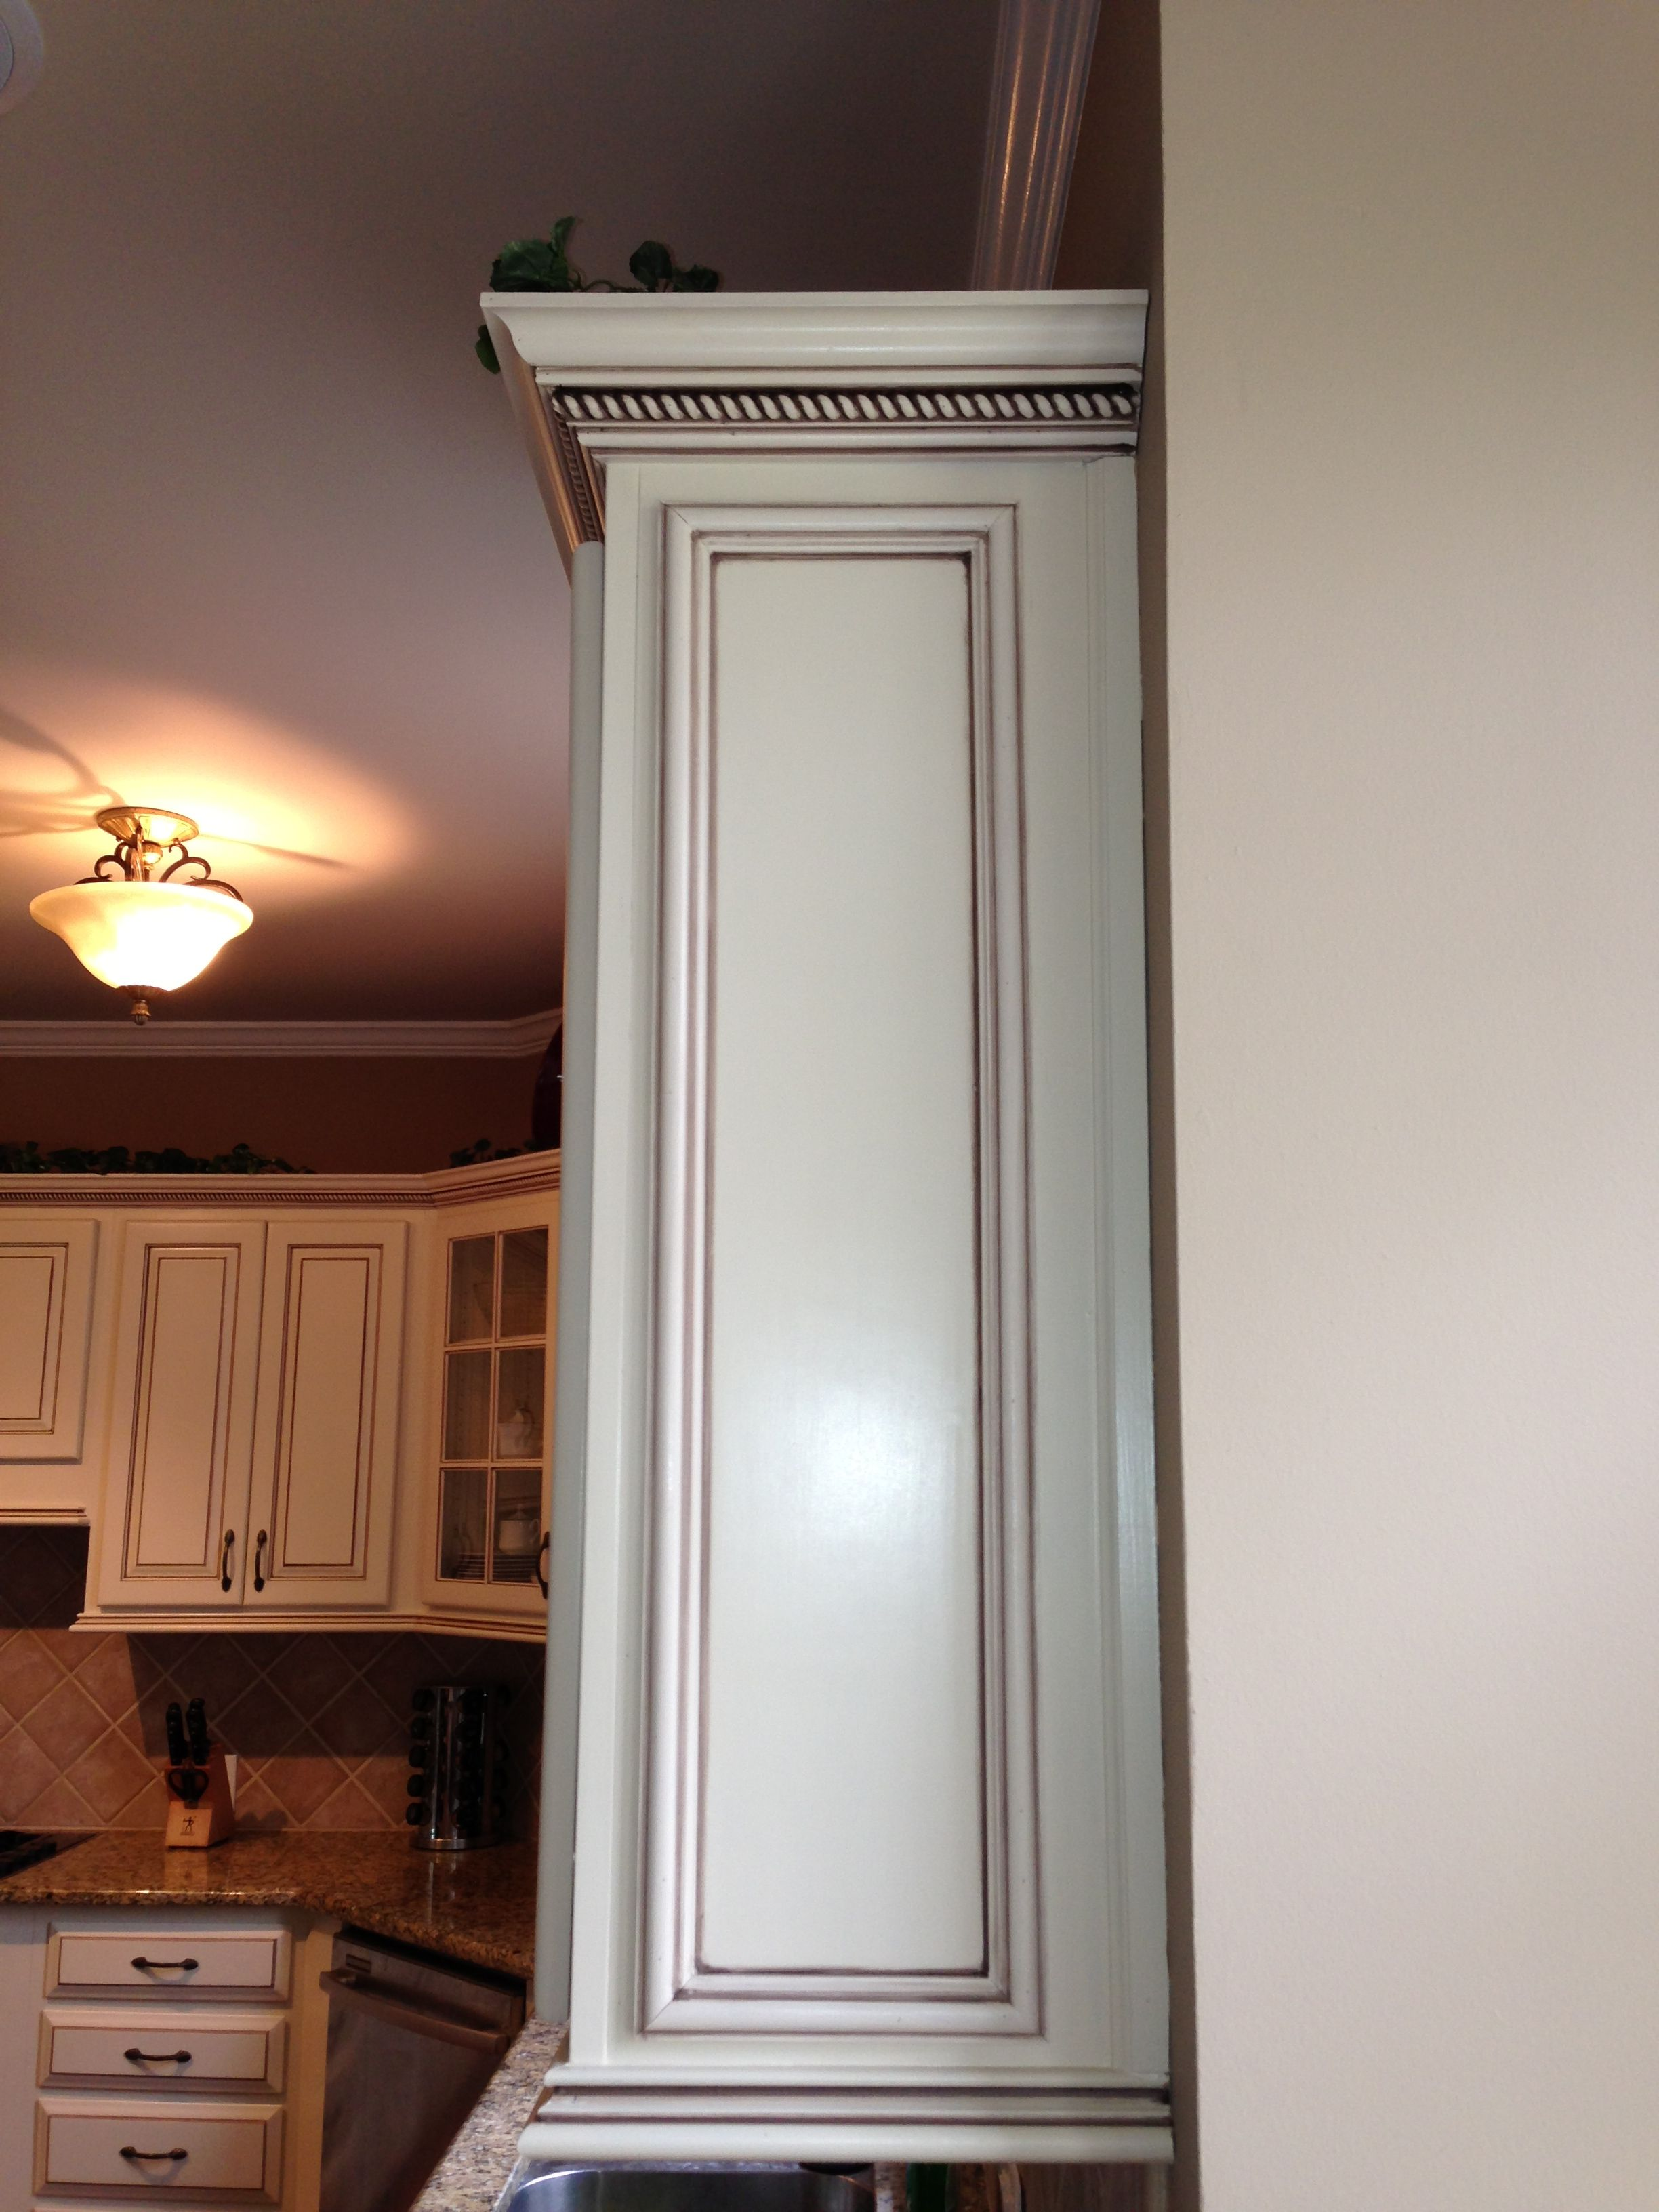 Java light rail molding cabinets com - Painting Oak Cabinets Antique White Glaze And Rope Crown Moulding At The Top Java Brown Pen Glaze Faux To Finish